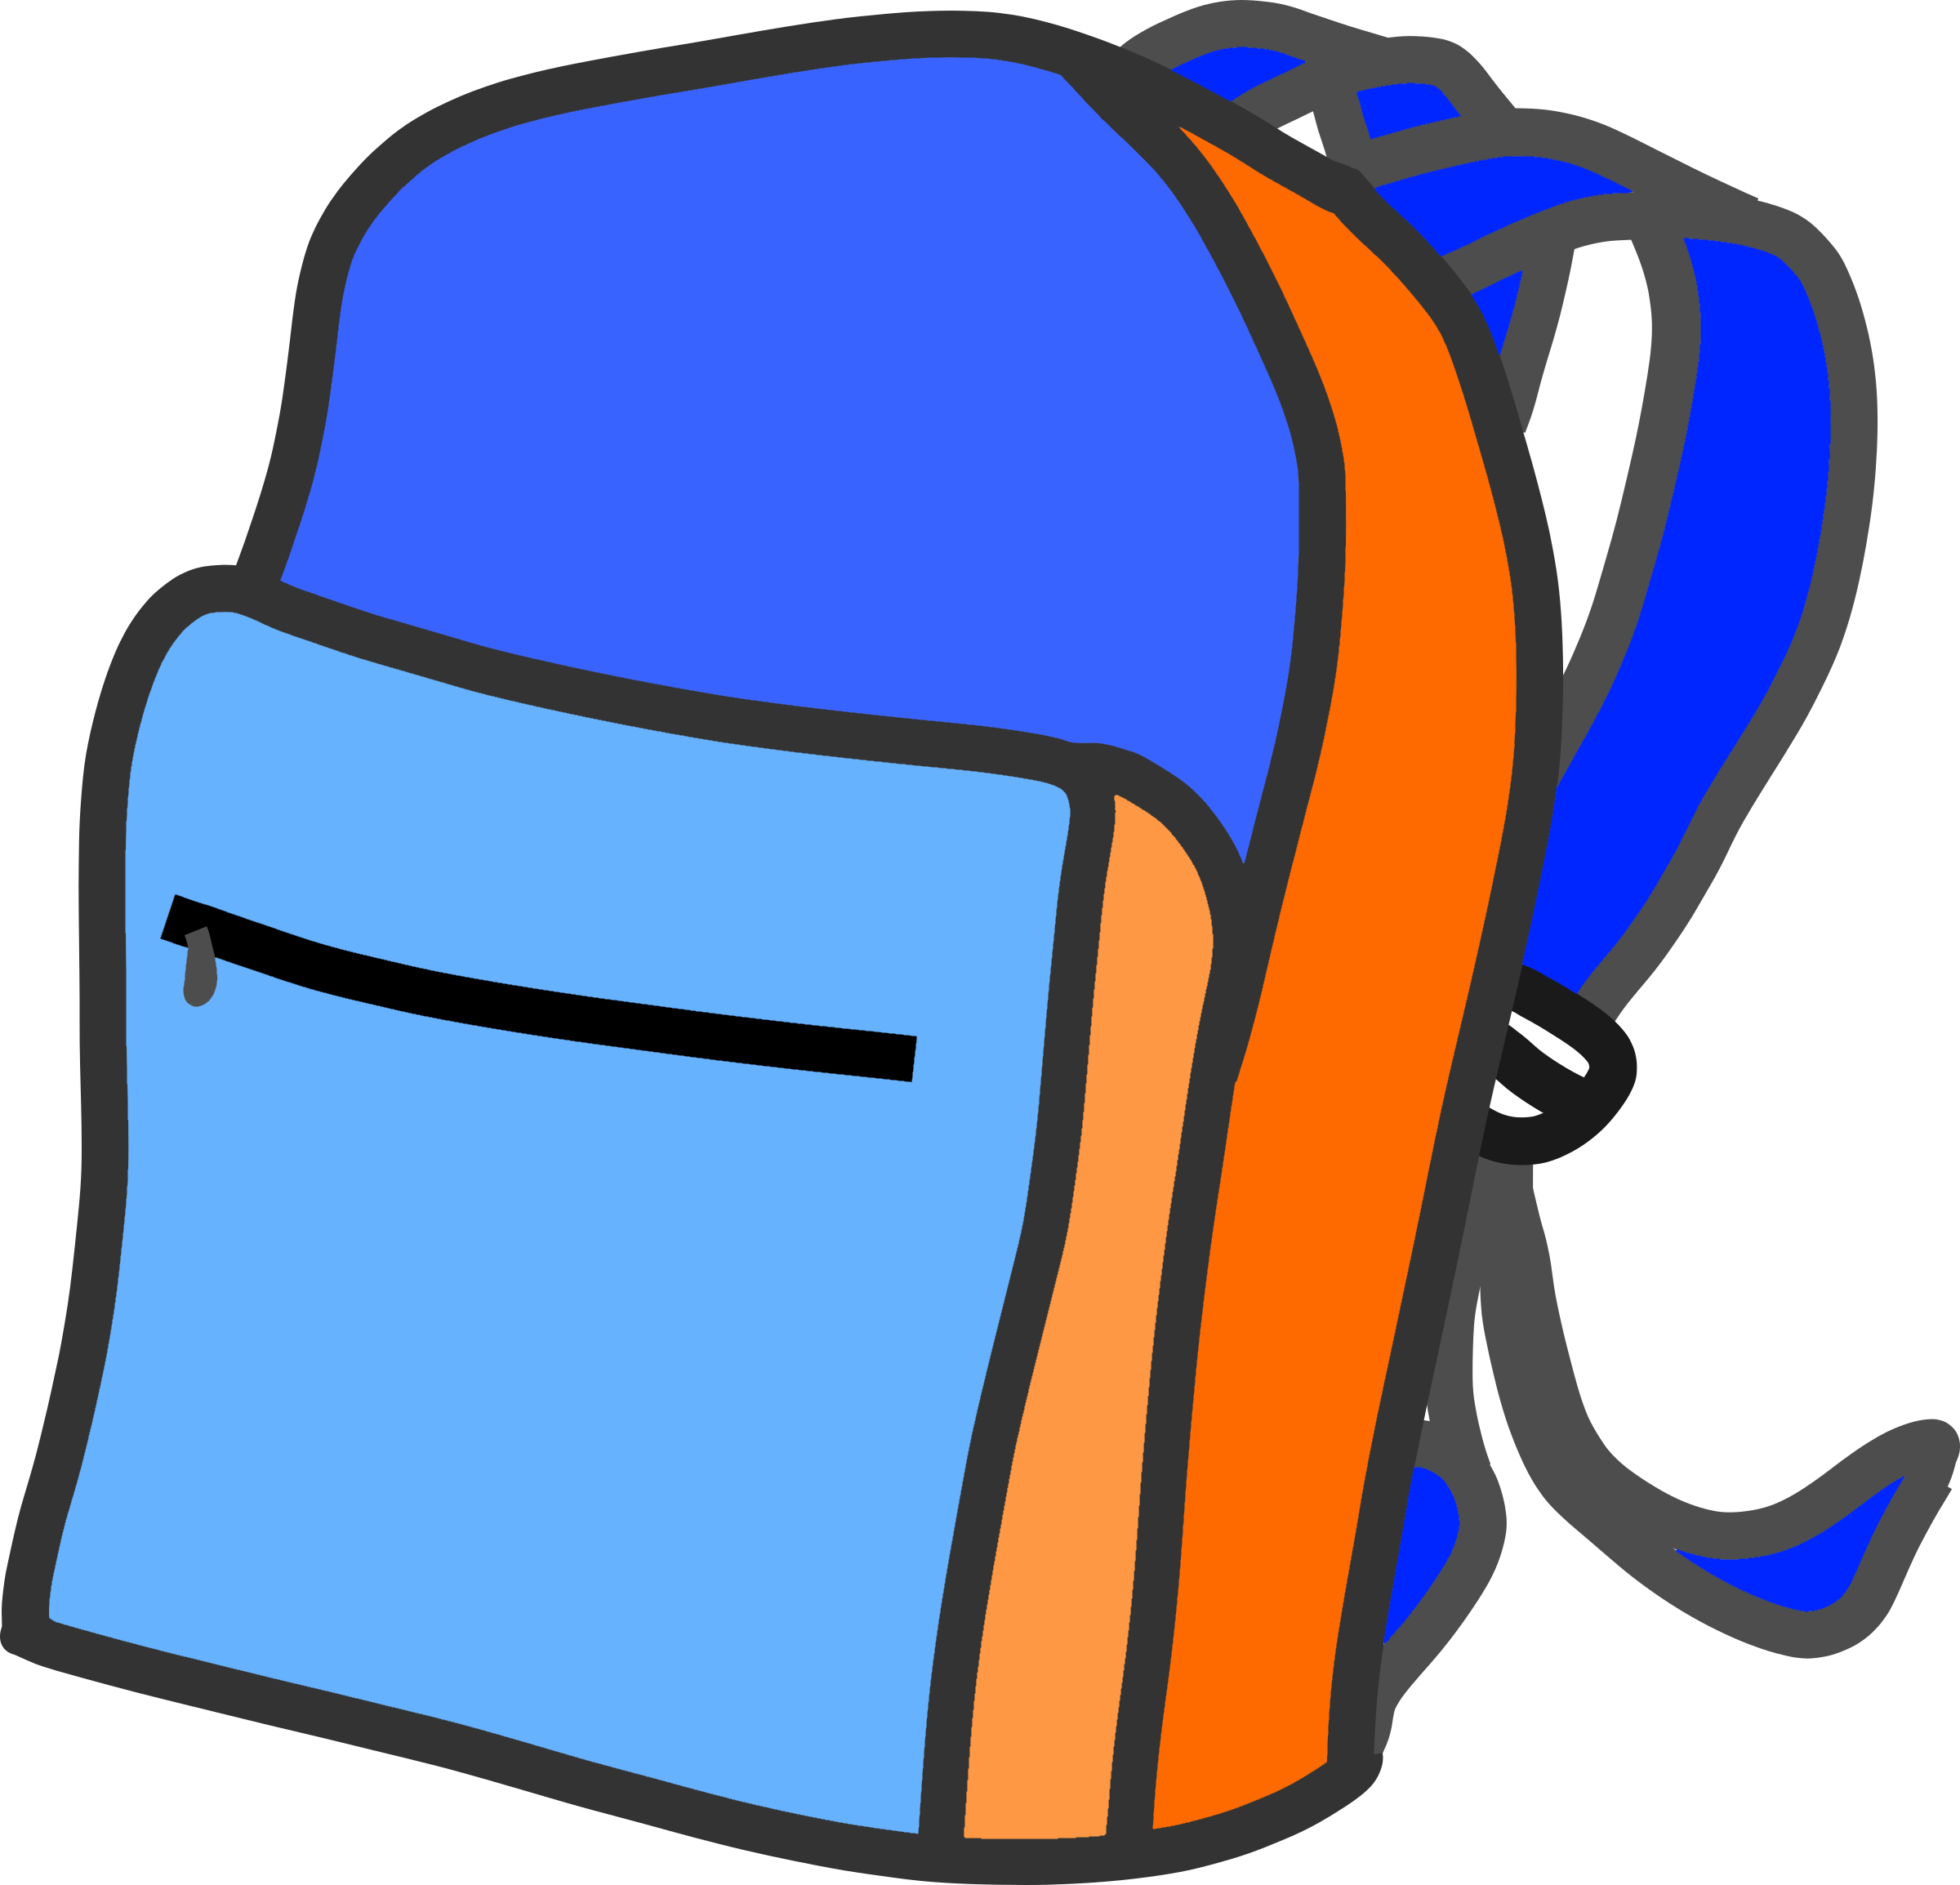 clip art free stock Bookbag clipart sschool. Backpack png transparent images